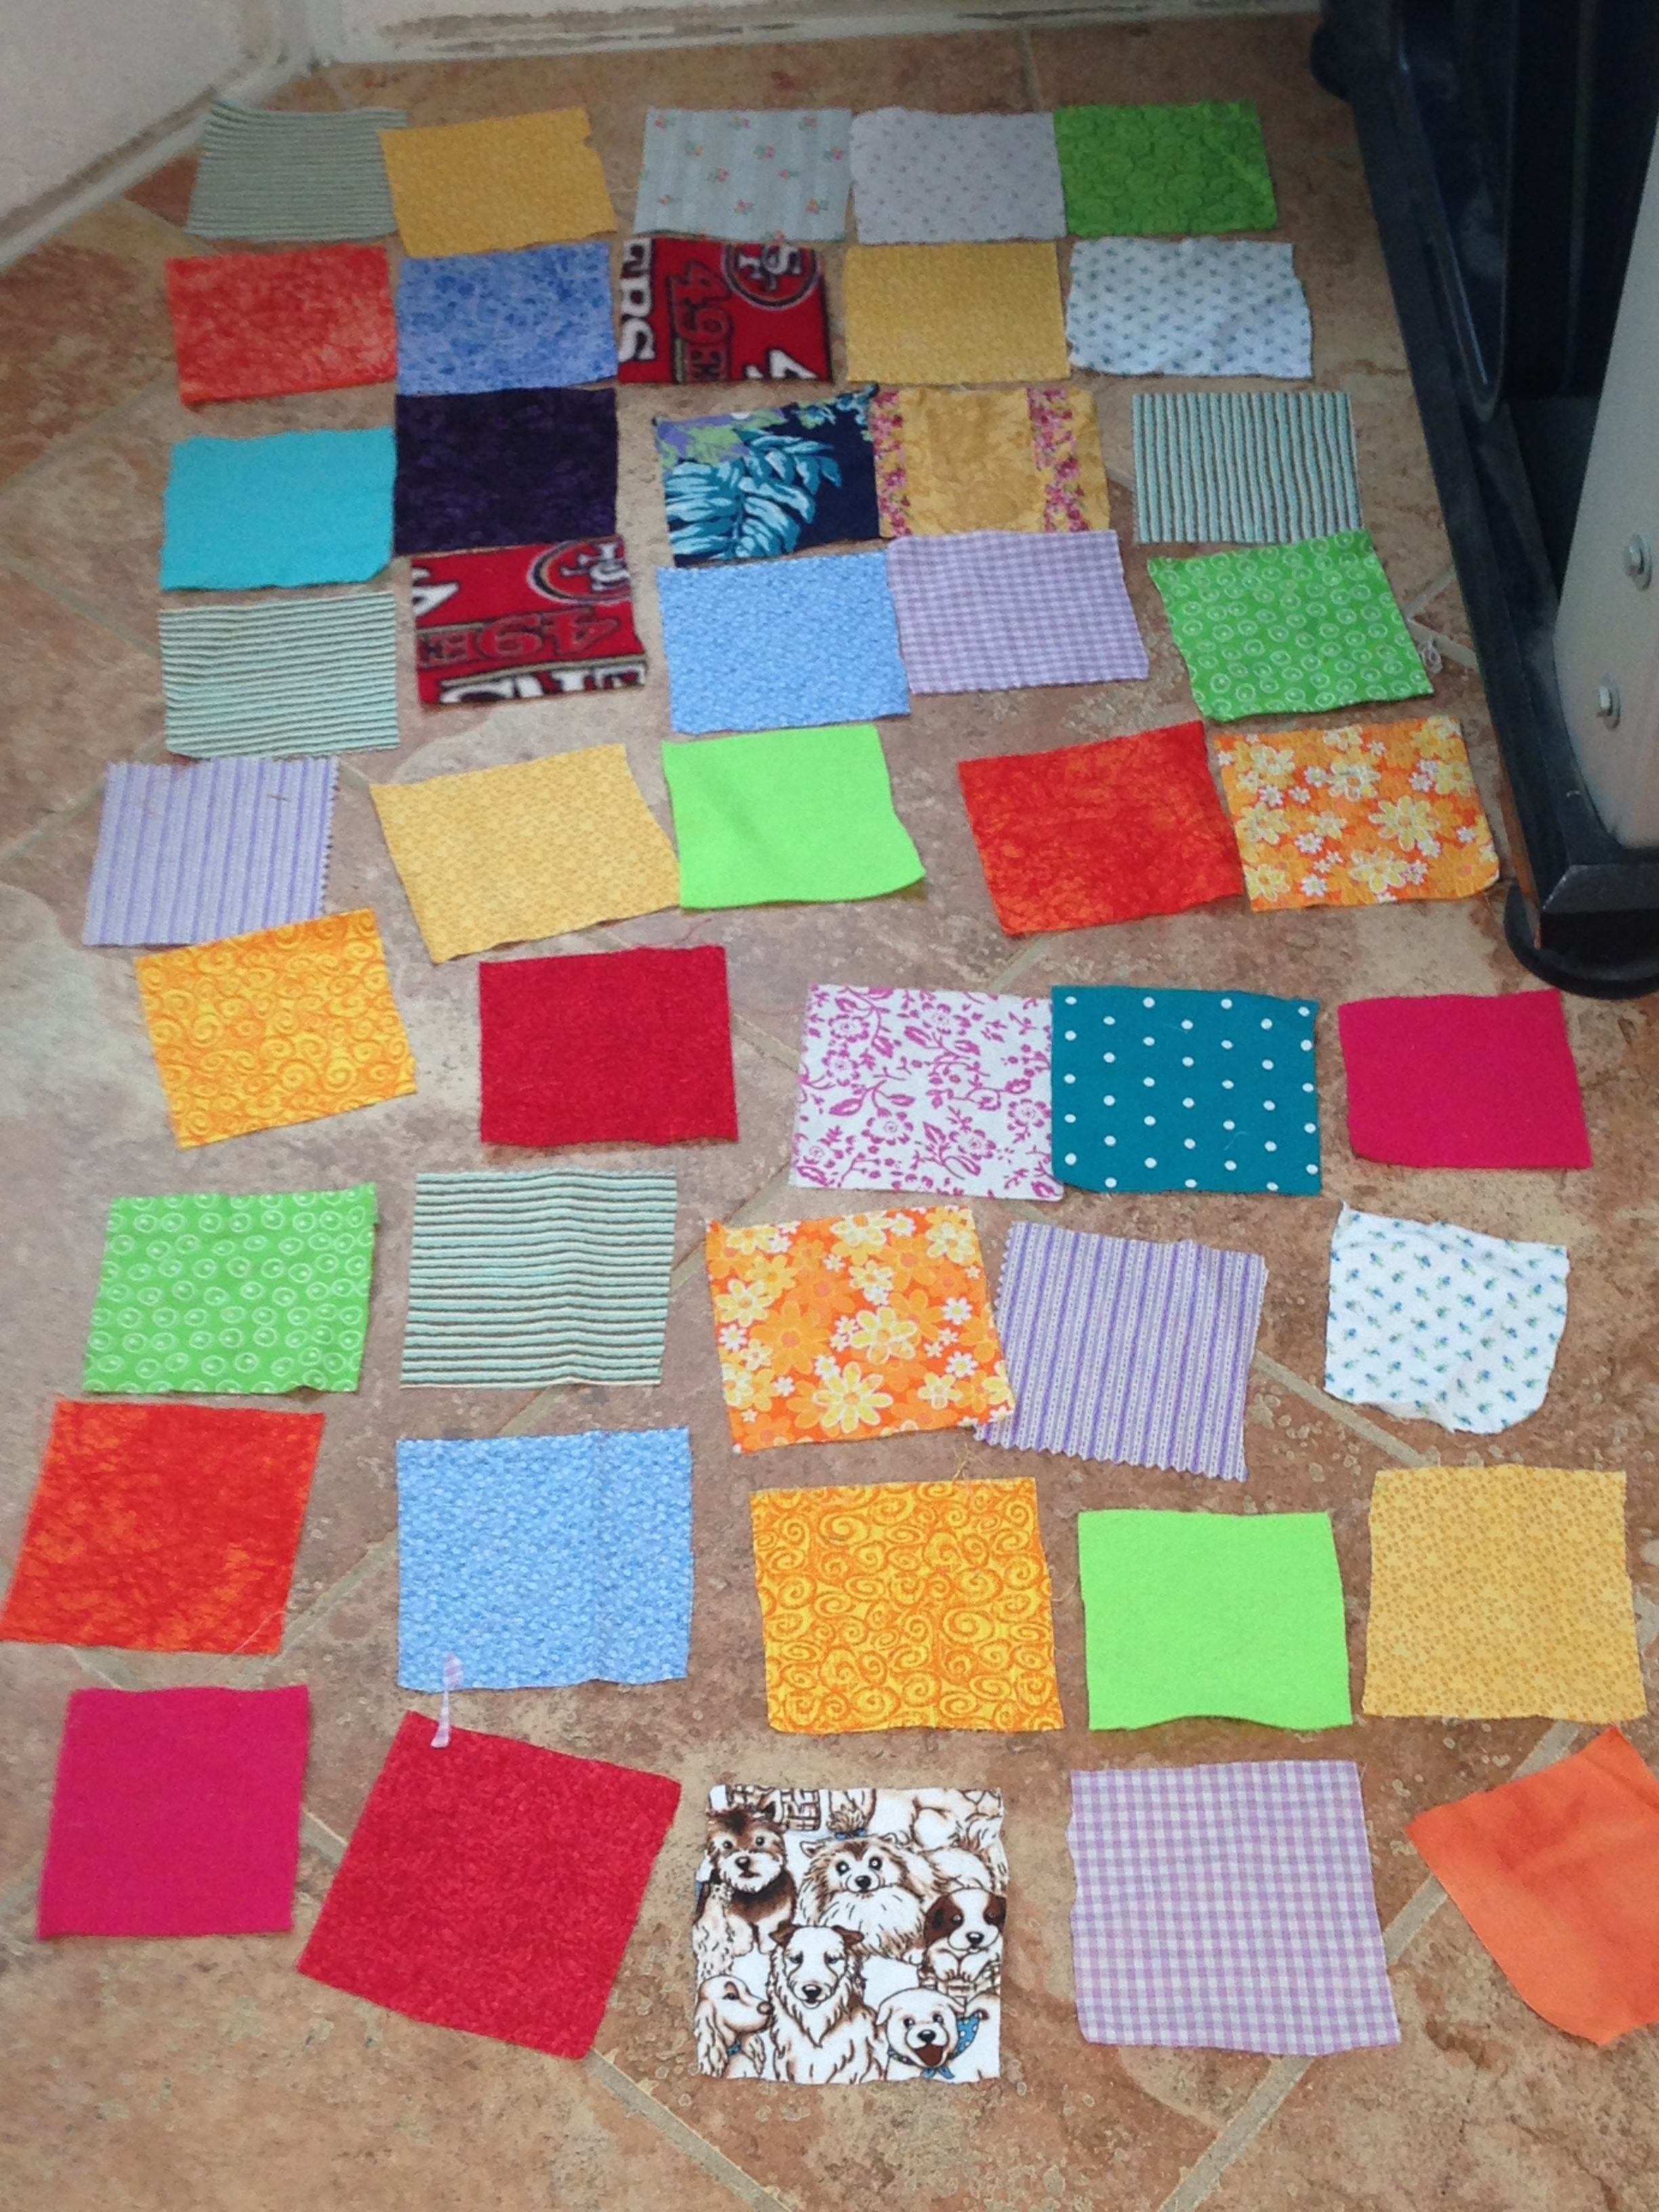 Beautiful quilt layout.